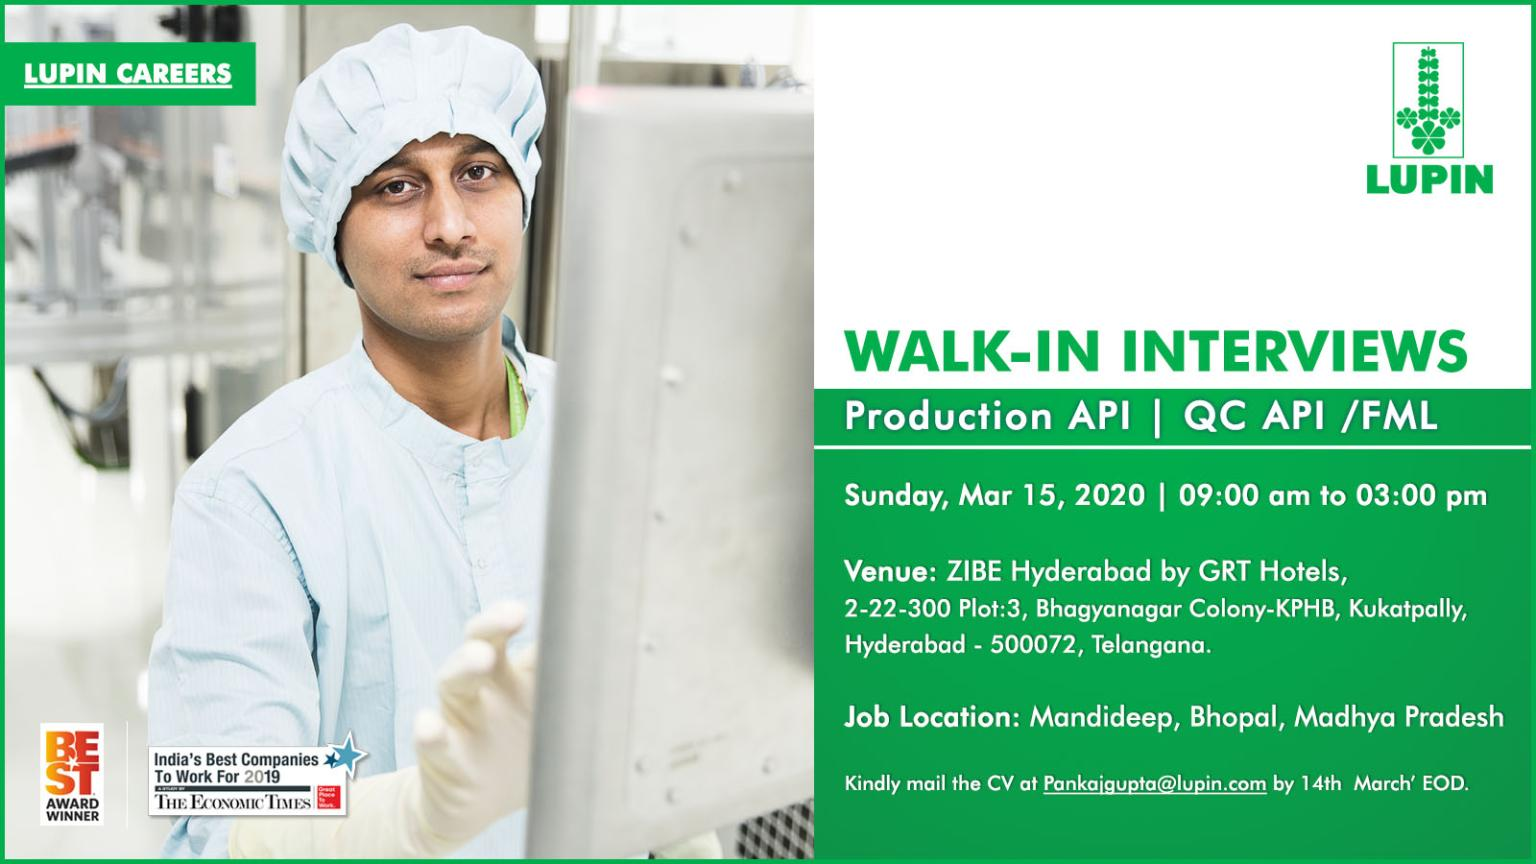 Lupin Limited – Walk in interview for Production & Quality Control on Mar 15th, 2020